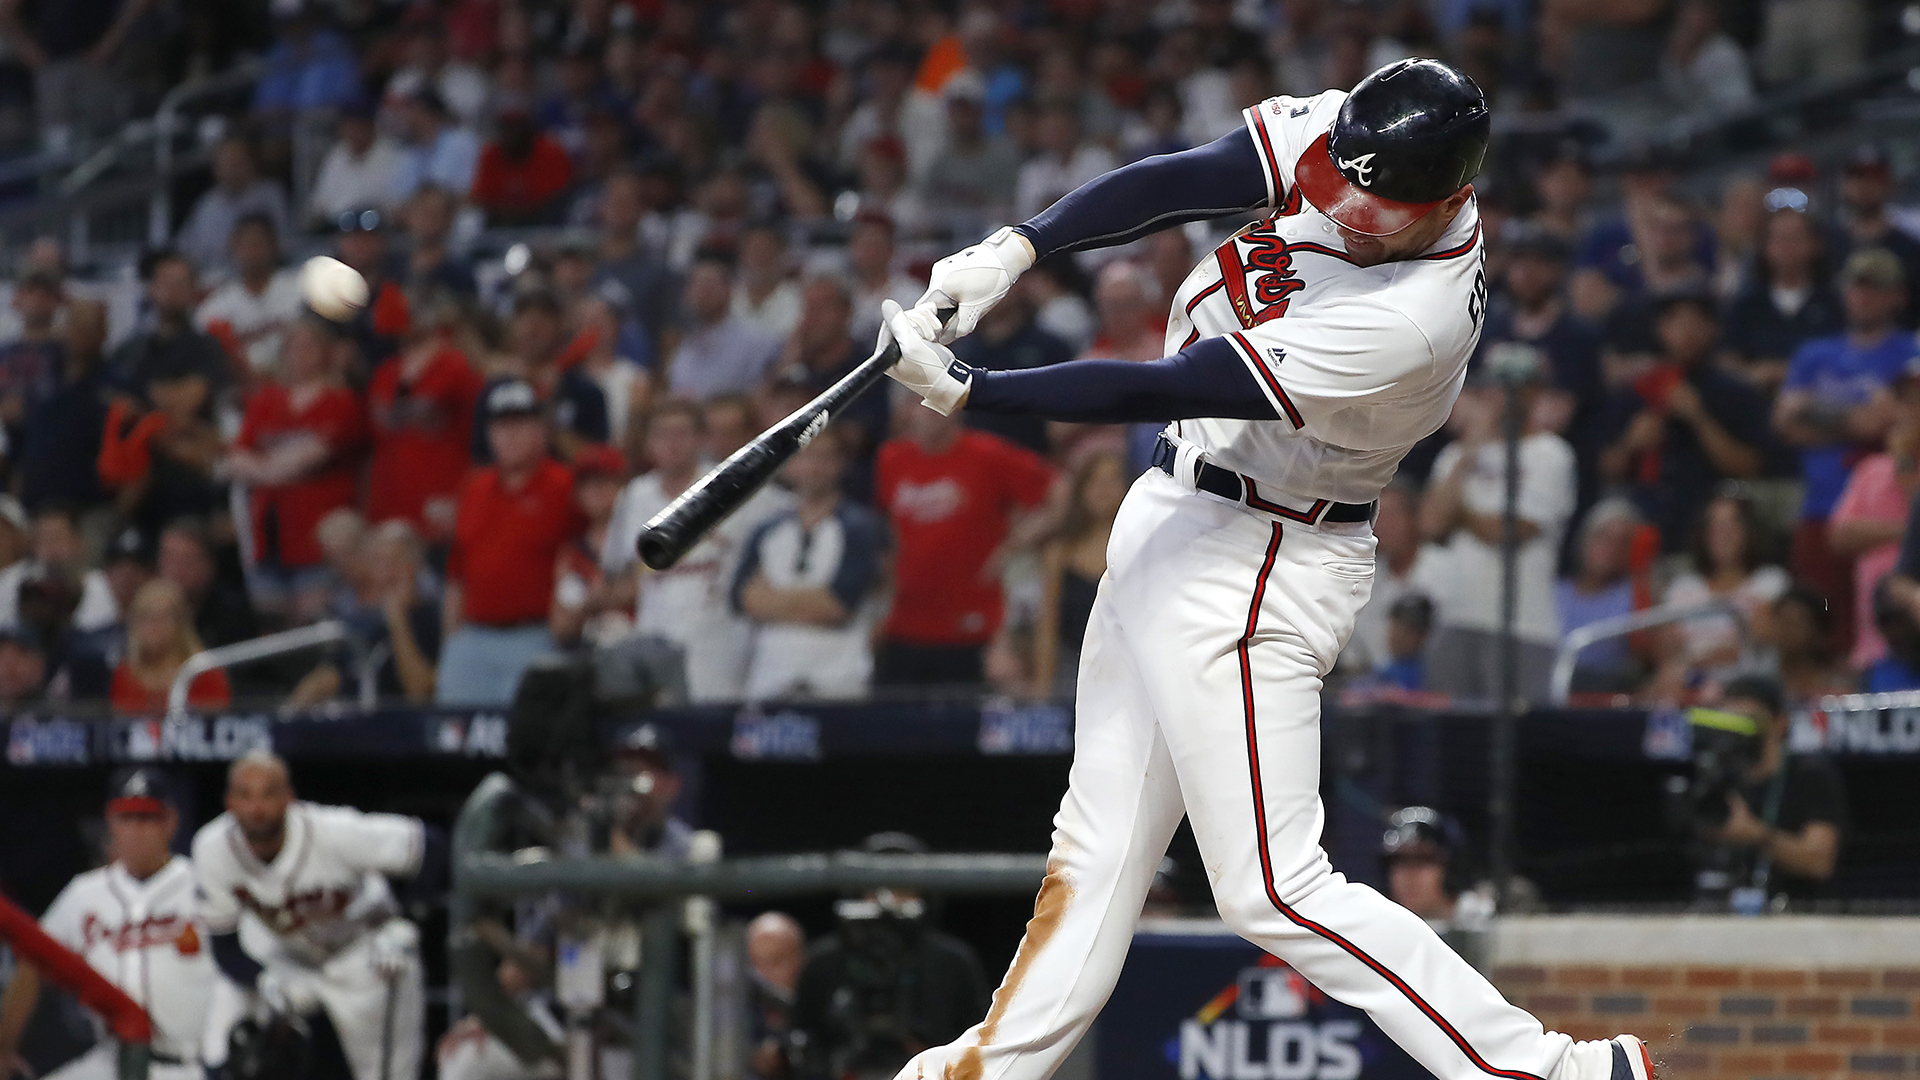 People want answers after Bay Area TV station uses racist headline to cover Braves NLDS loss